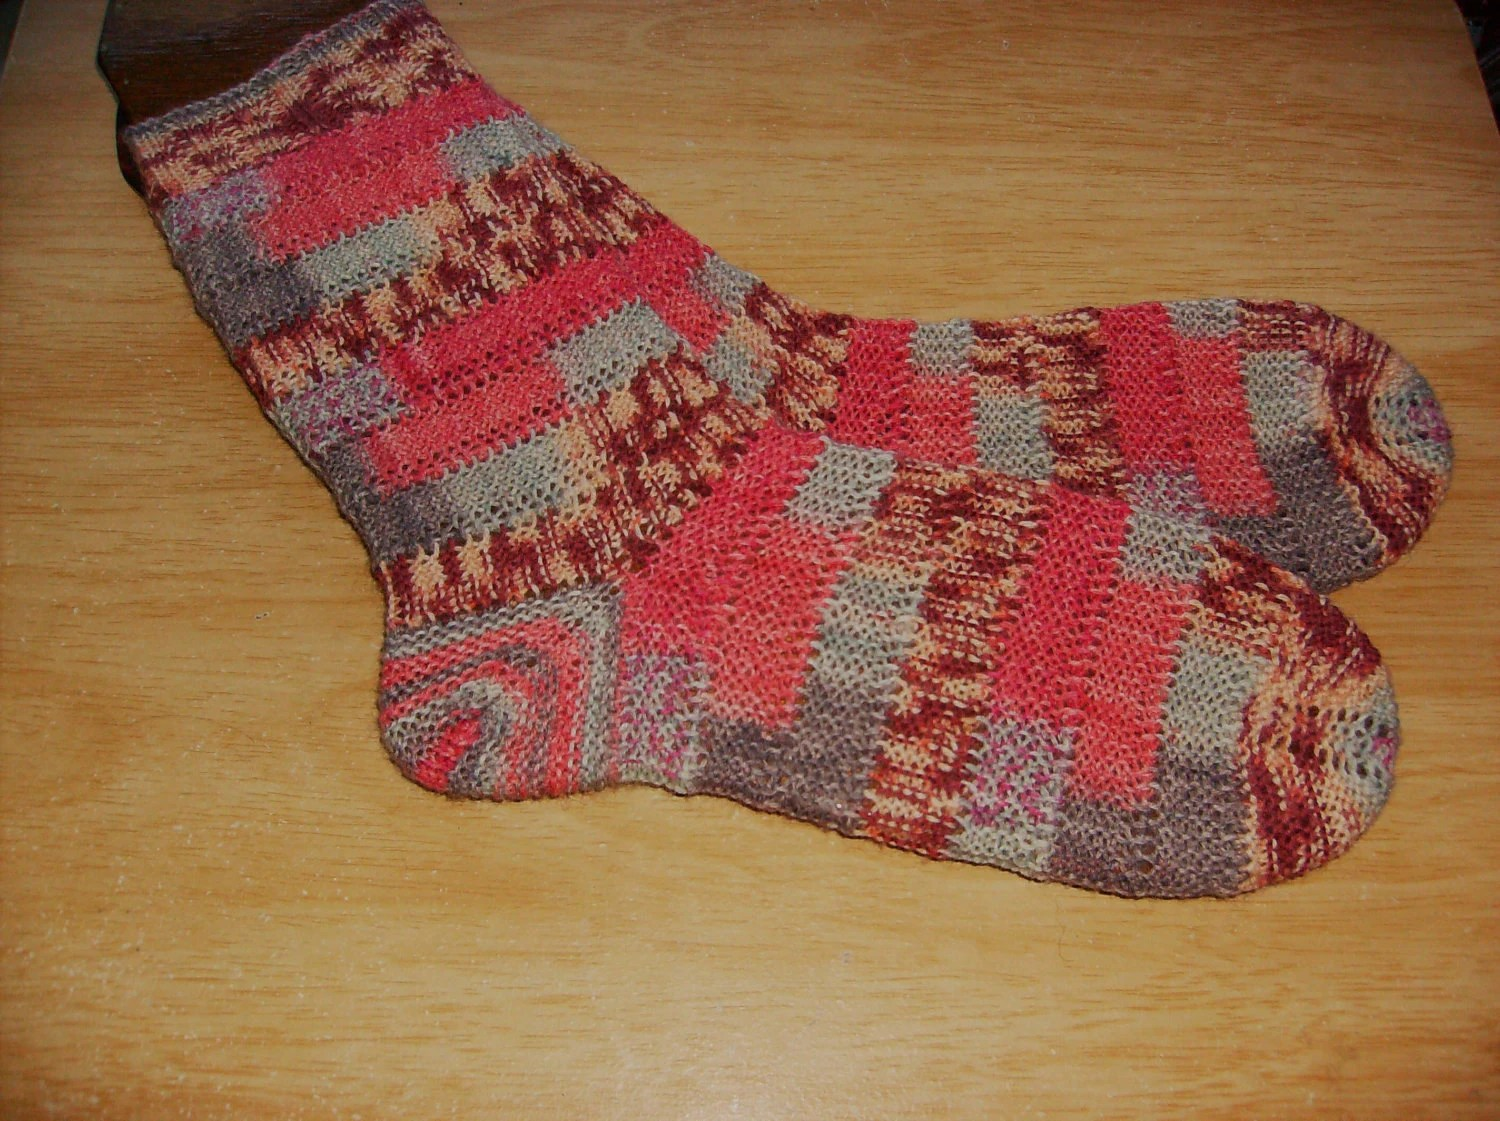 hand knit women's socks UK 4 - 5  US 5 - 6